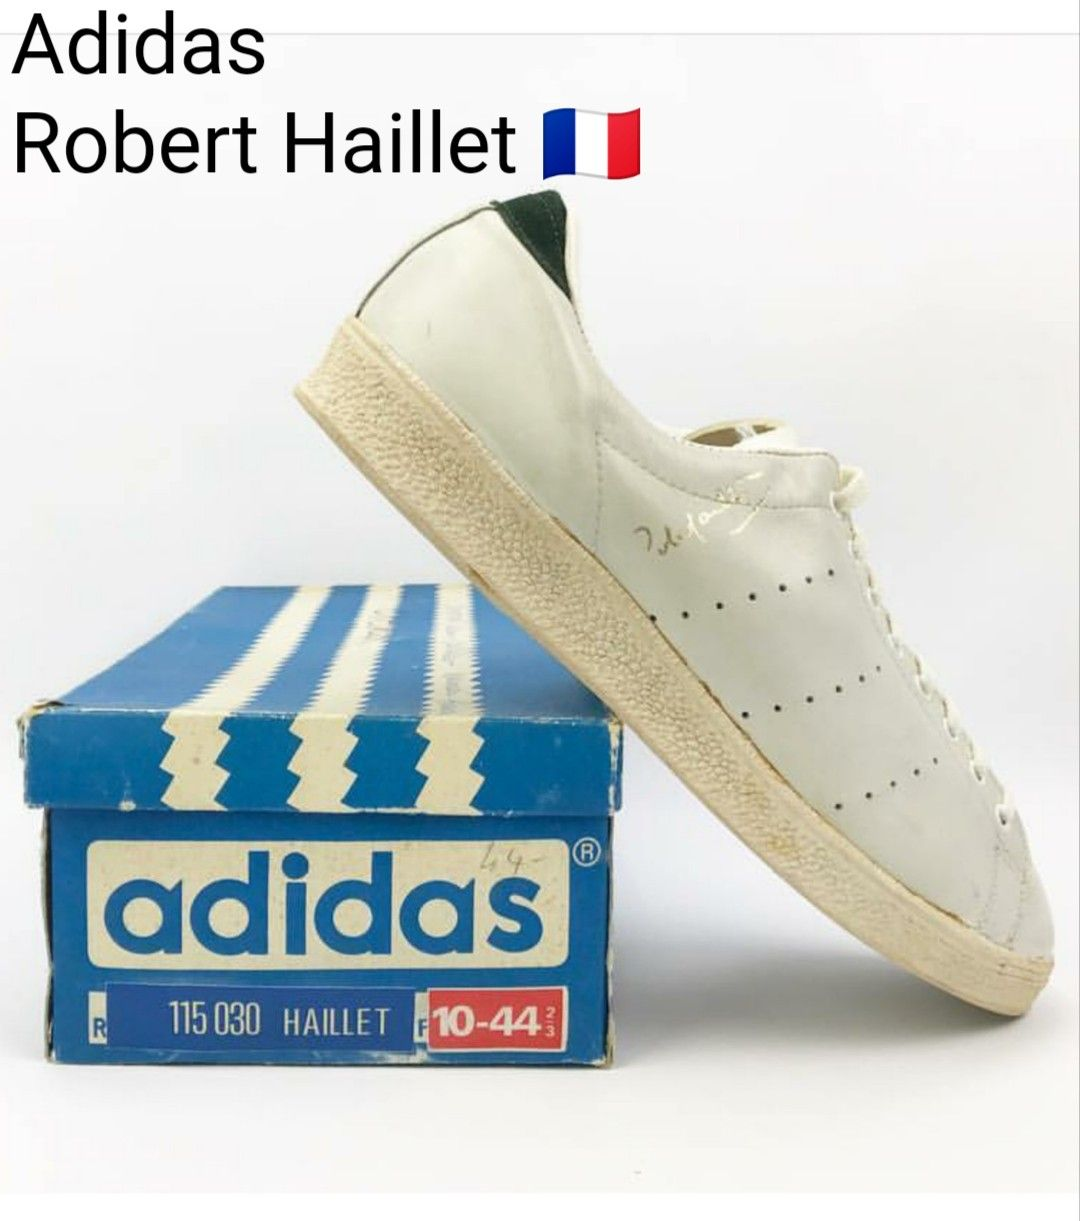 French made Adidas Robert Haillet from